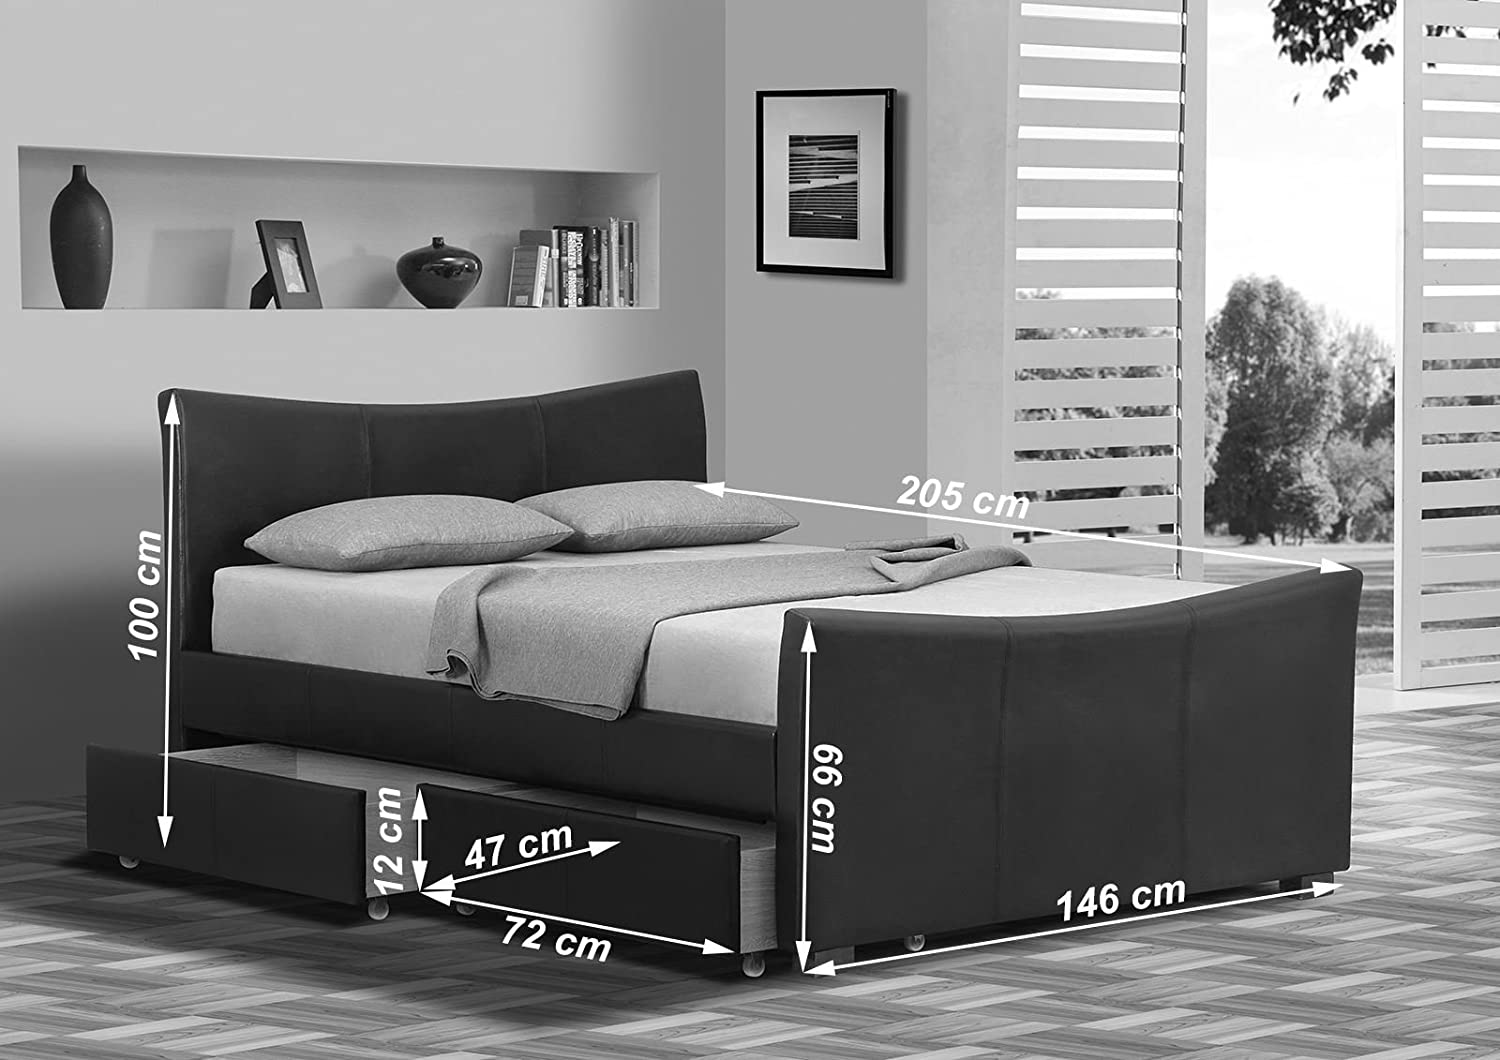 MODERN FURNITURE DIRECT Turin Bettgestell Doppelbett Oder 5 ft ...